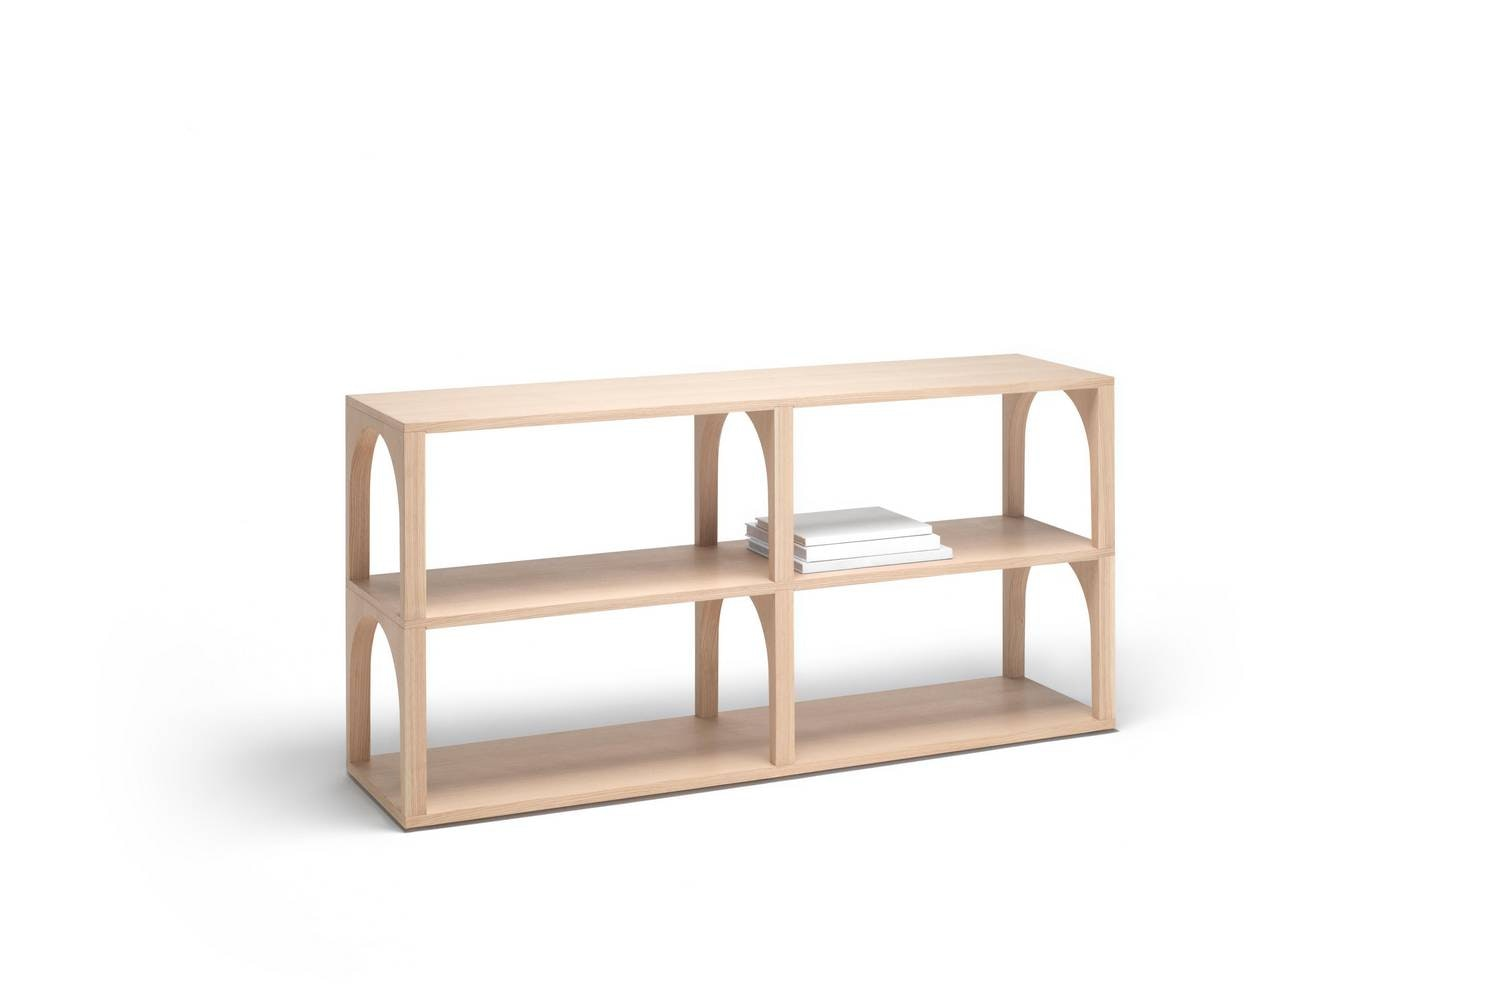 Portico Library Bookshelf by Claesson Koivisto Rune for Living Divani